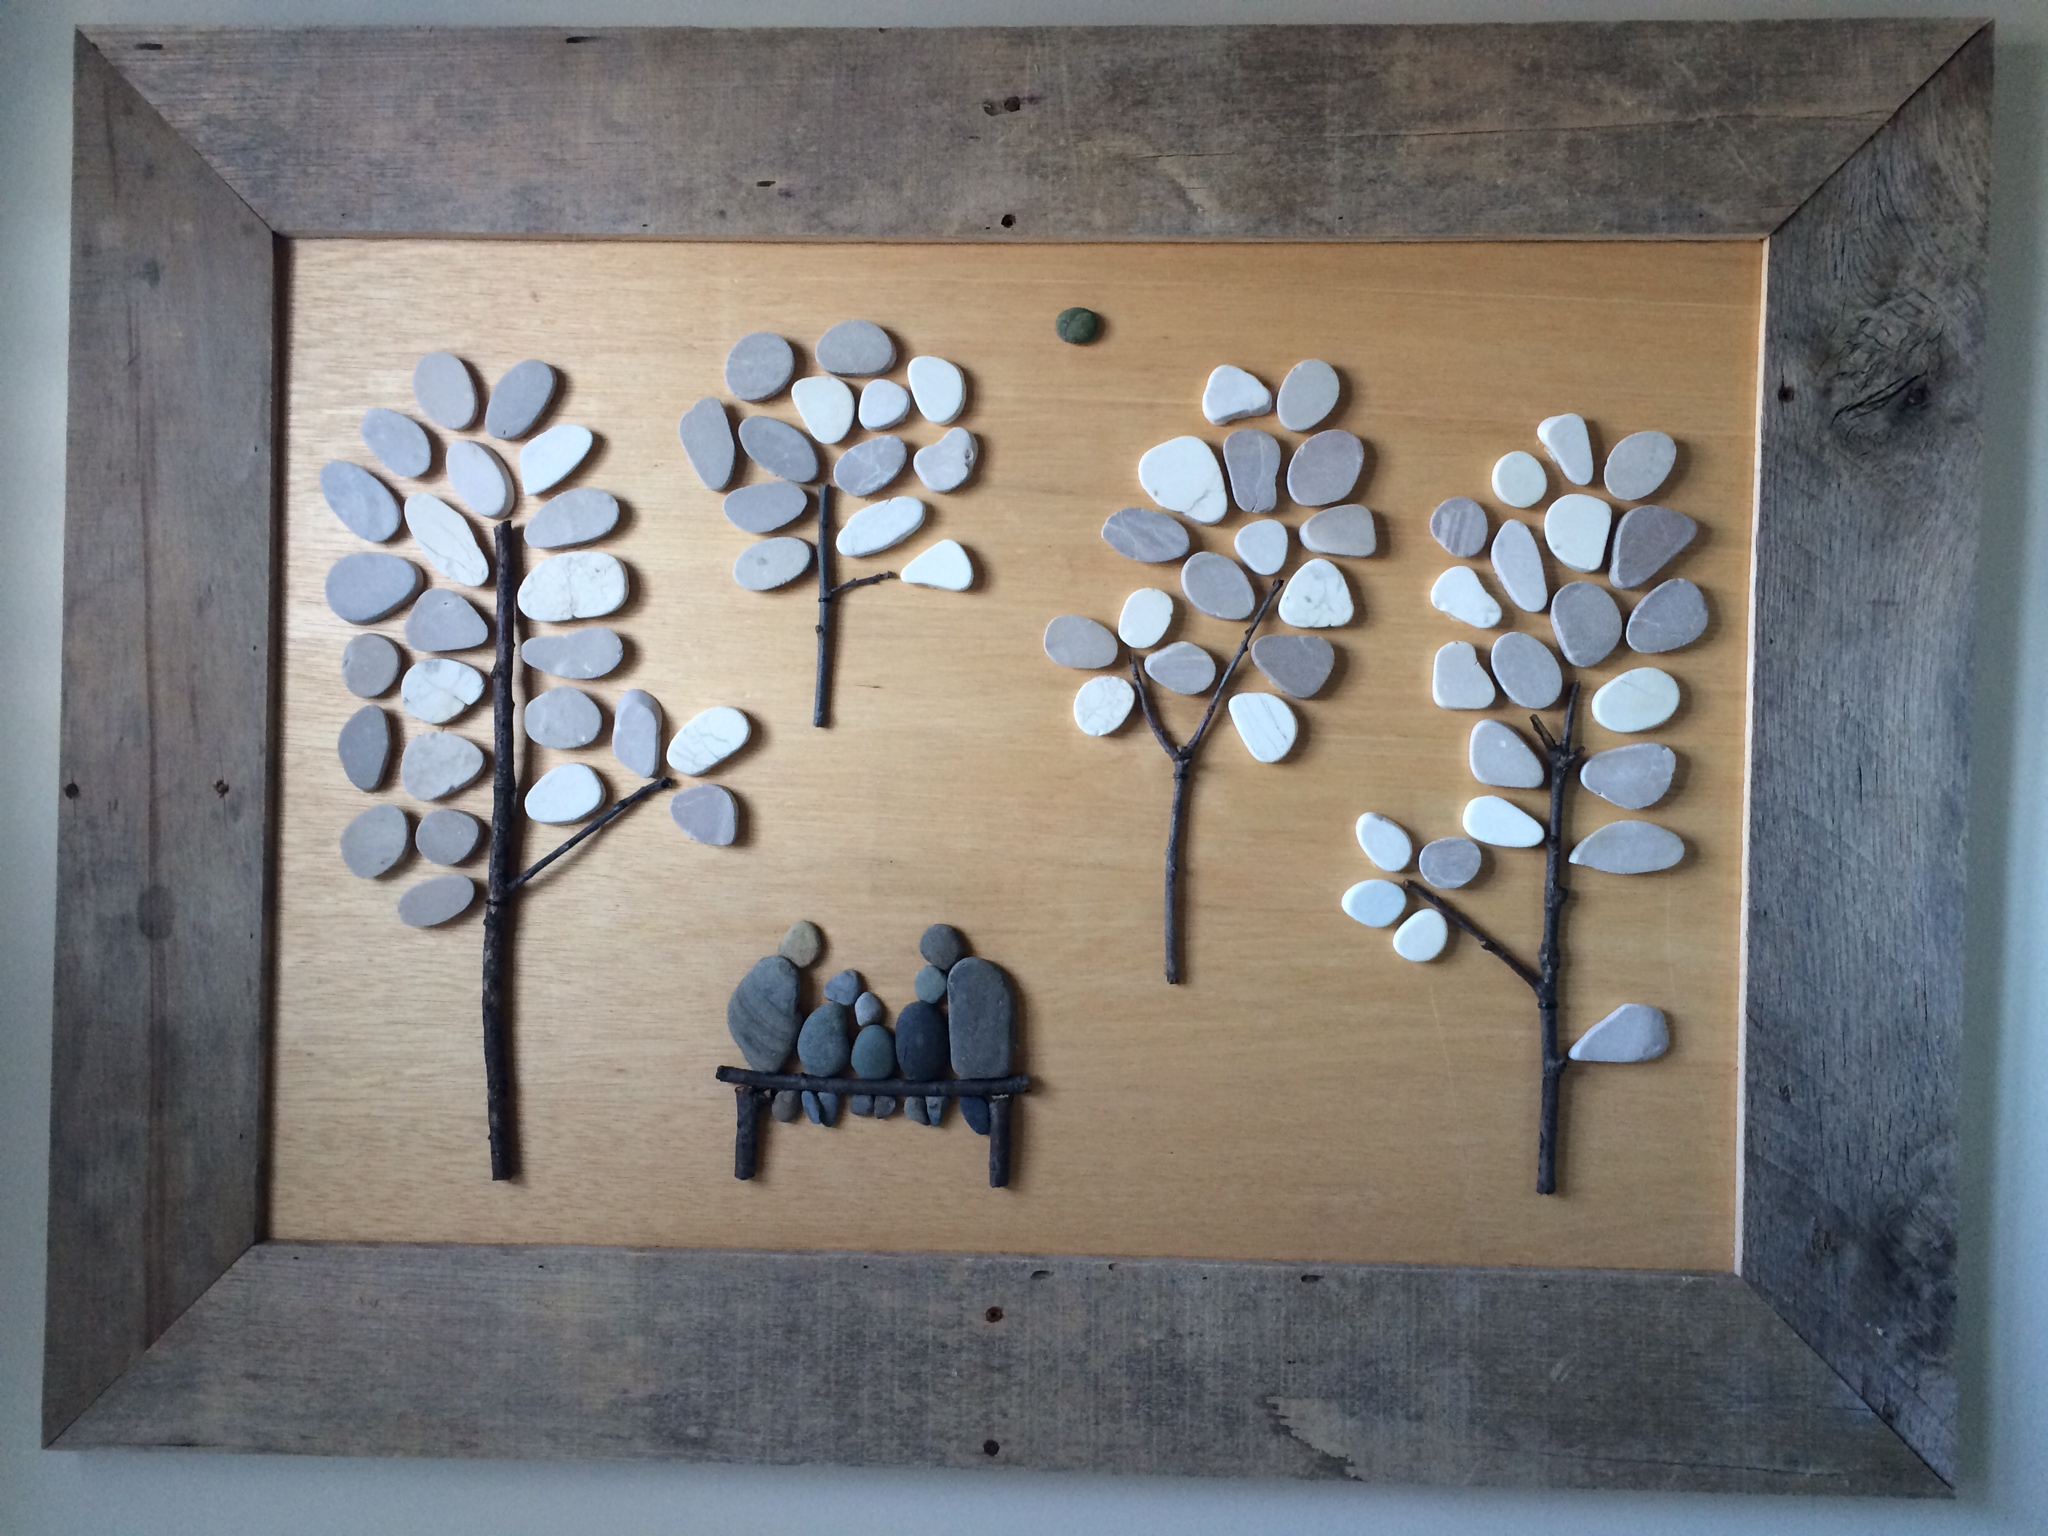 Ana white pebble art with pallet wood diy projects pebble art with pallet wood solutioingenieria Gallery